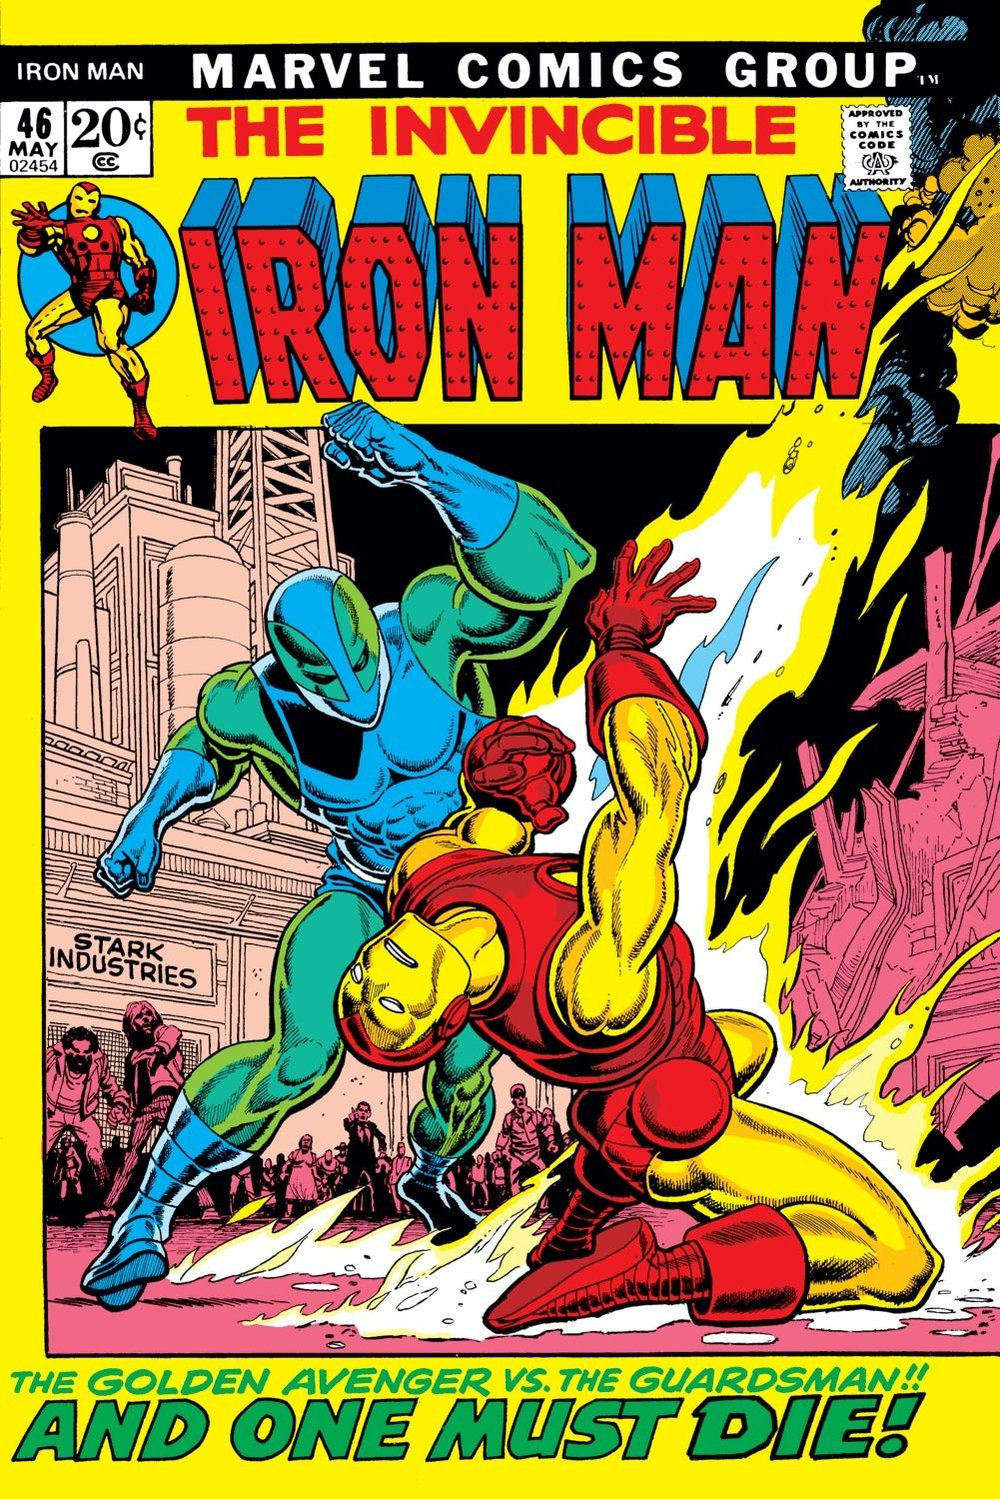 Iron Man (1968) #46, cover penciled by Gil Kane & inked by Ralph Reese.